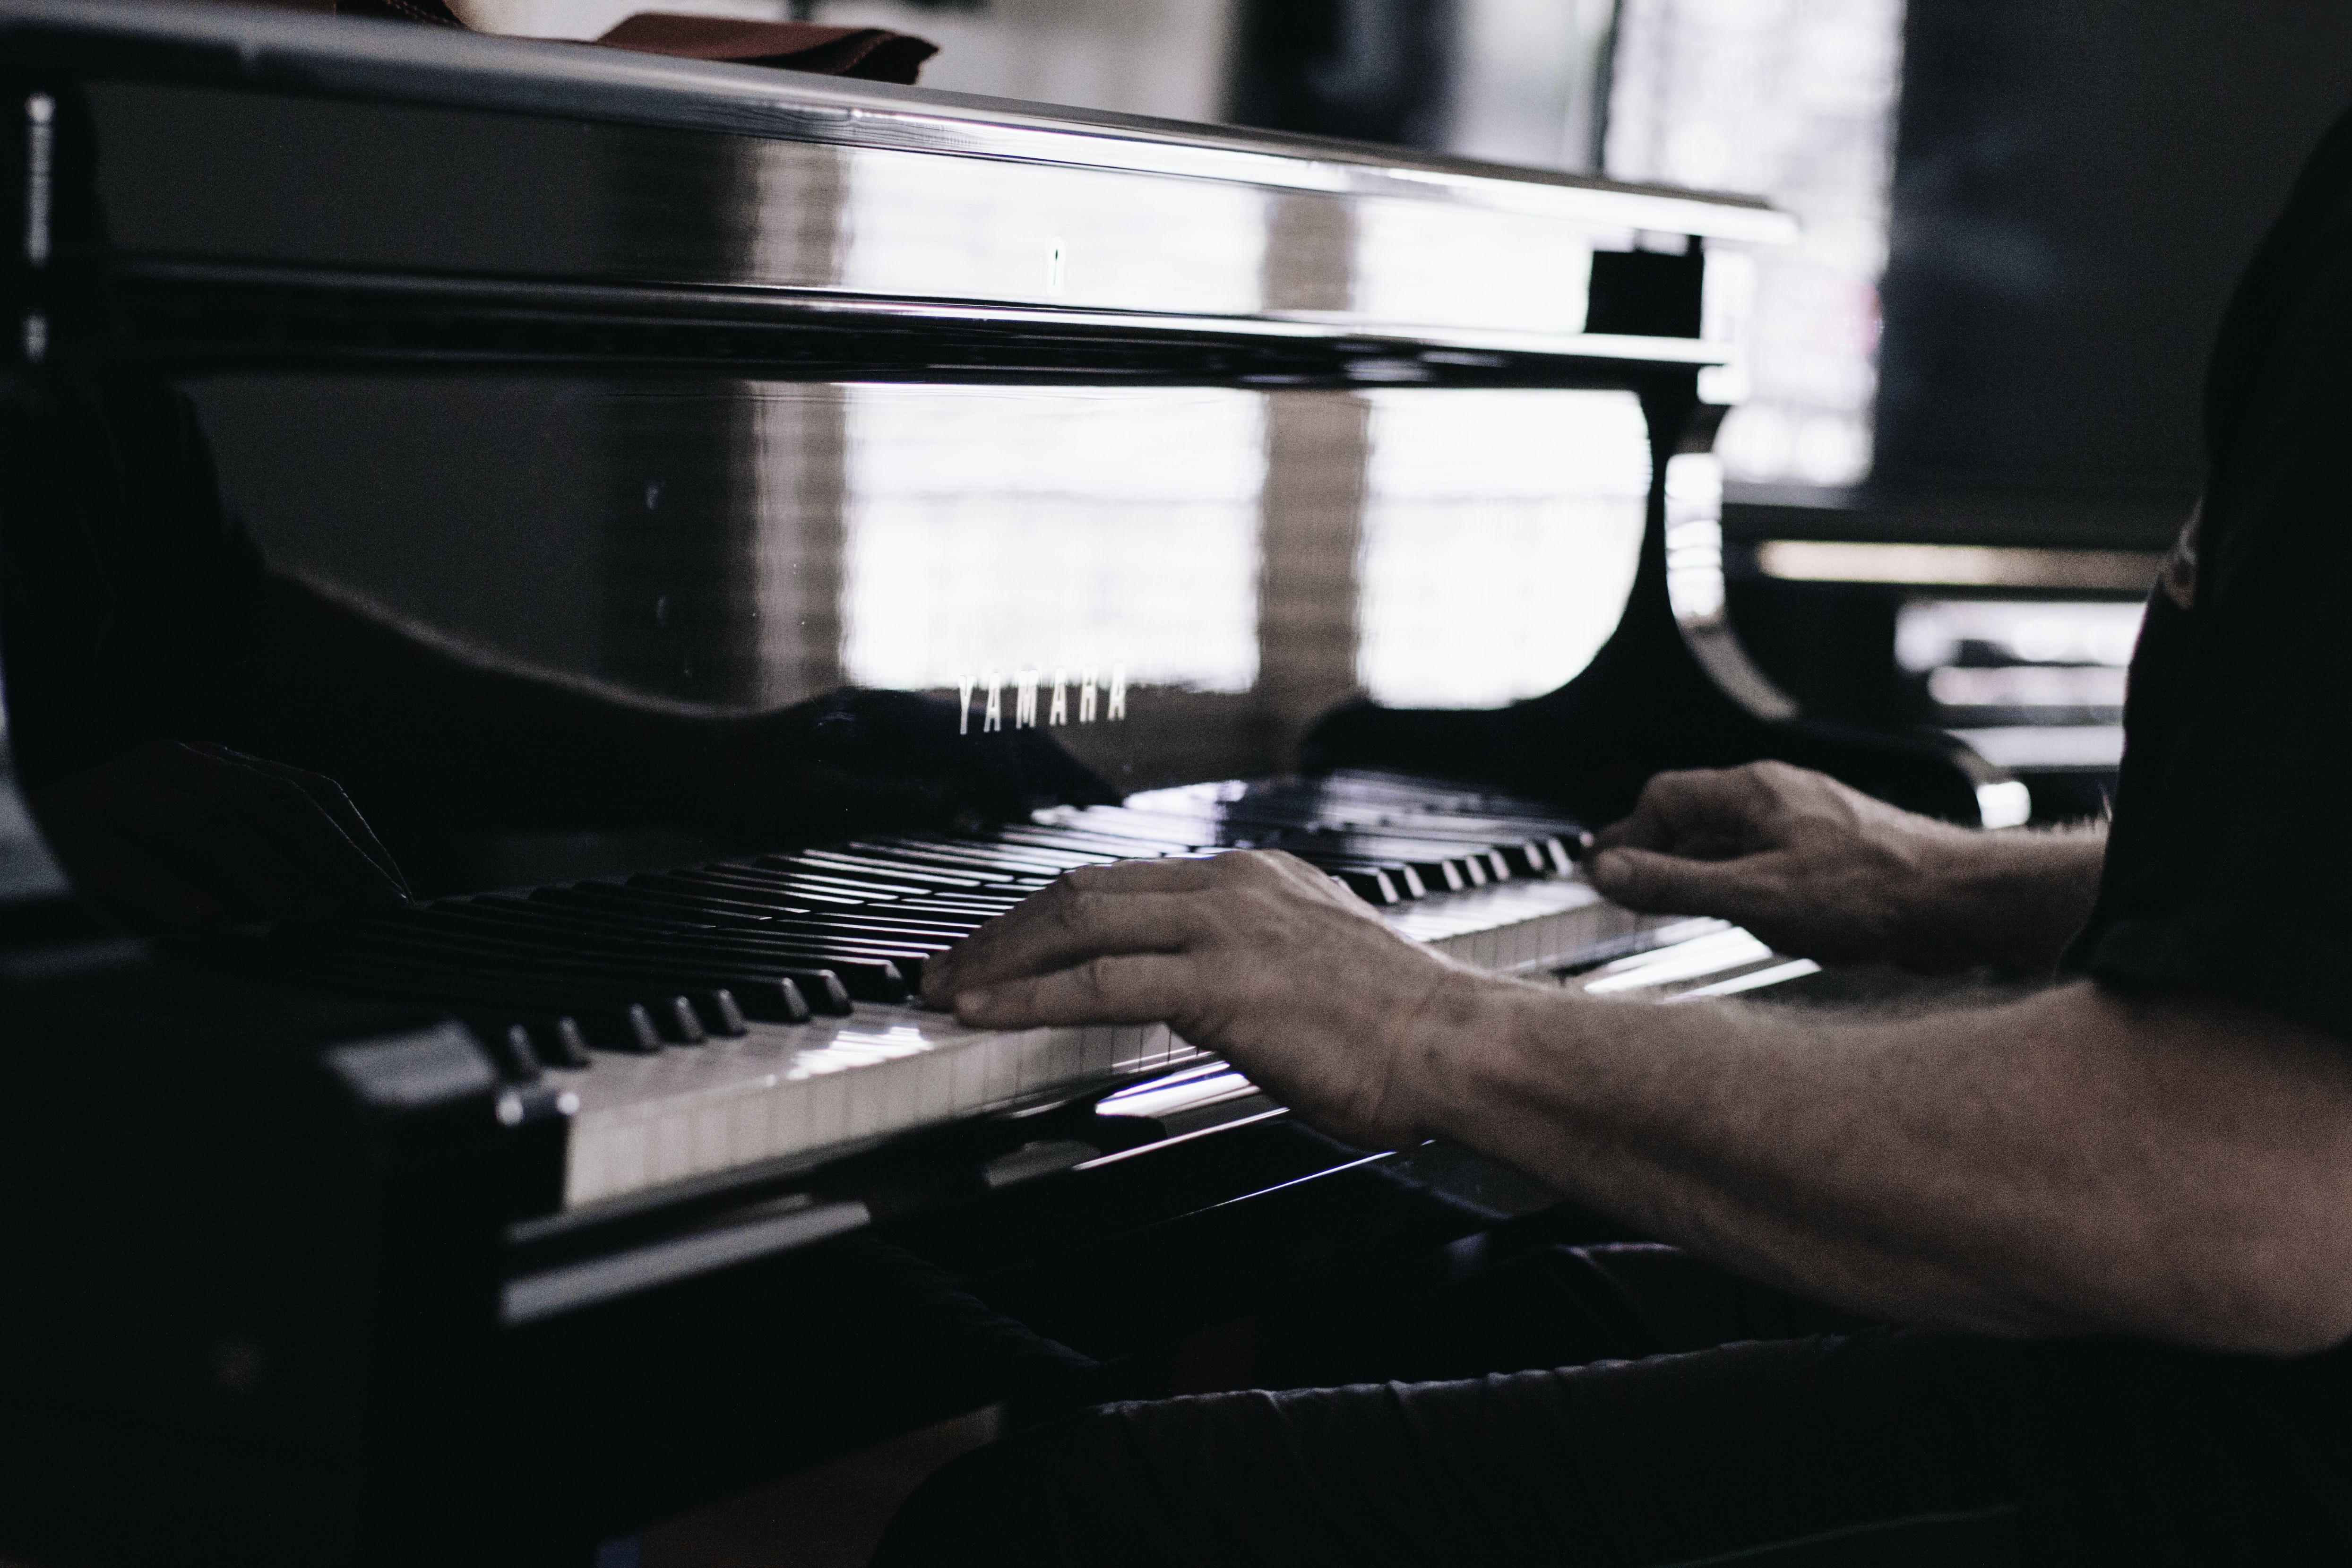 A fuzzy shot of a man's hands on the keyboard of a piano